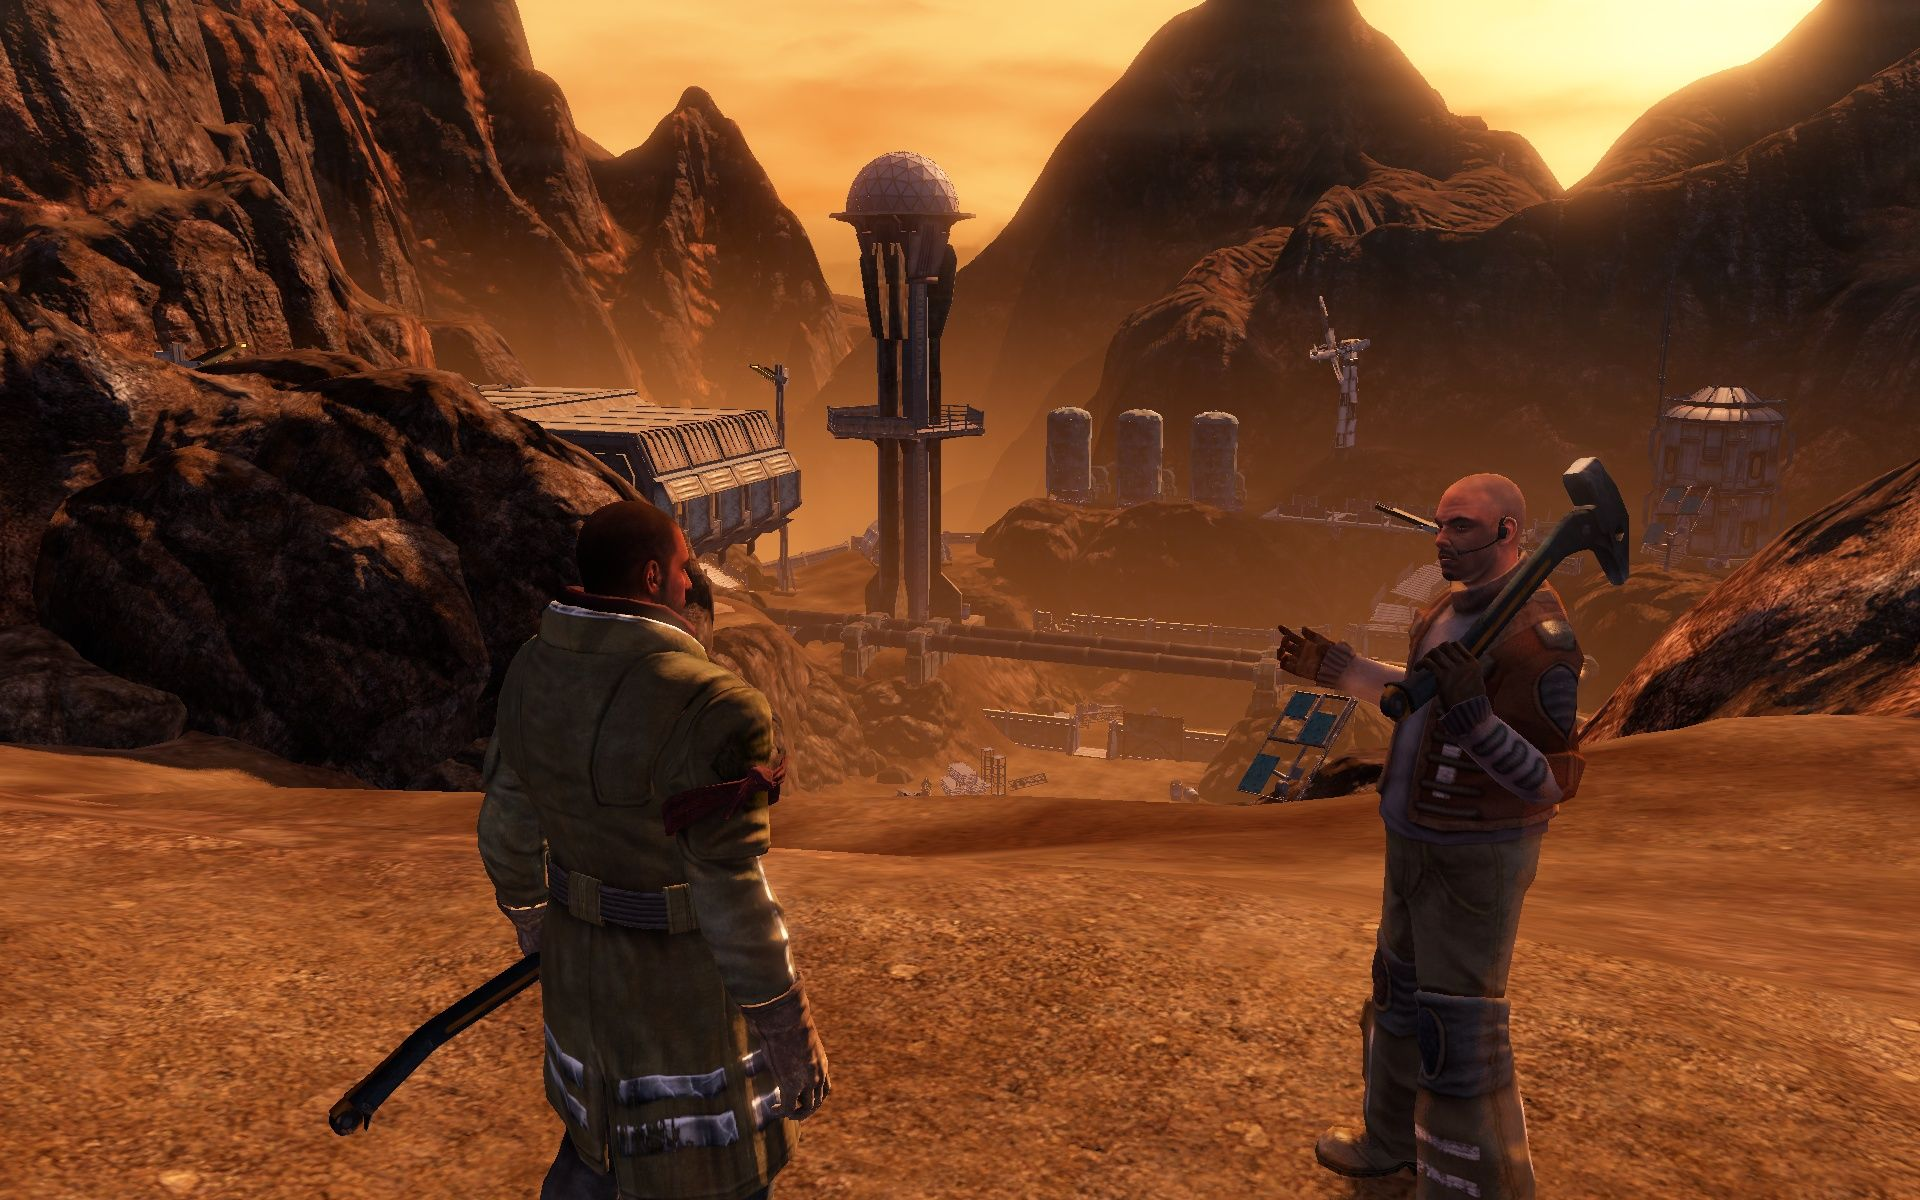 http://www.mobygames.com/images/shots/l/391648-red-faction-guerrilla-windows-screenshot-mason-s-first-mission.jpg